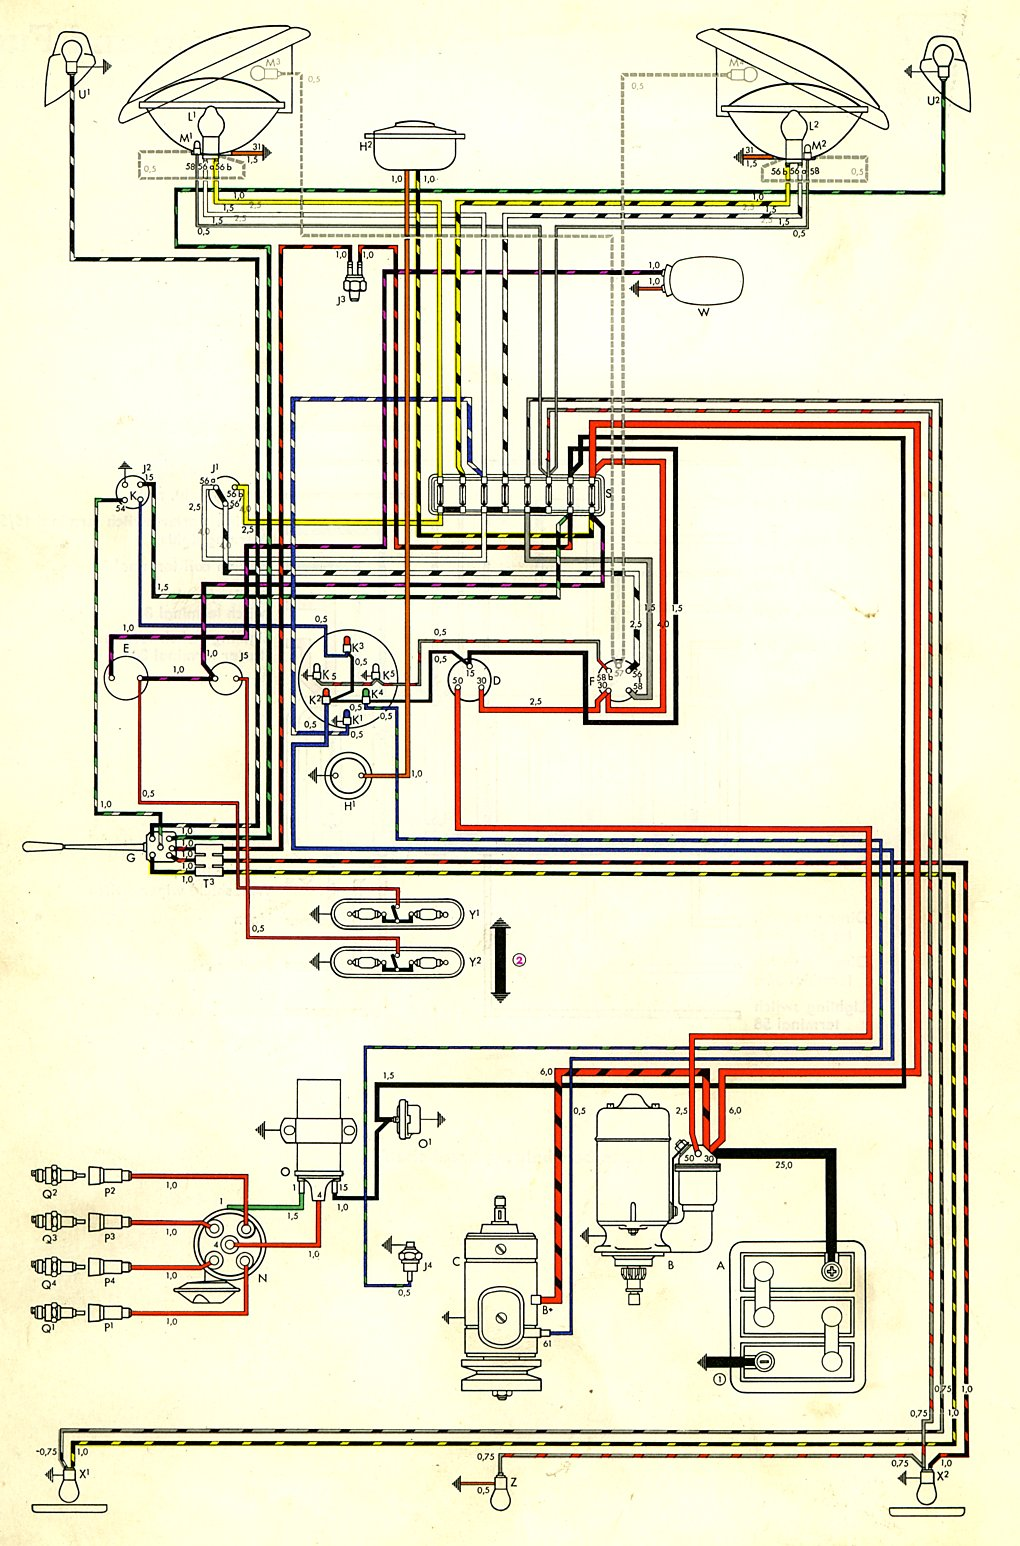 wiring diagram for 75 nova